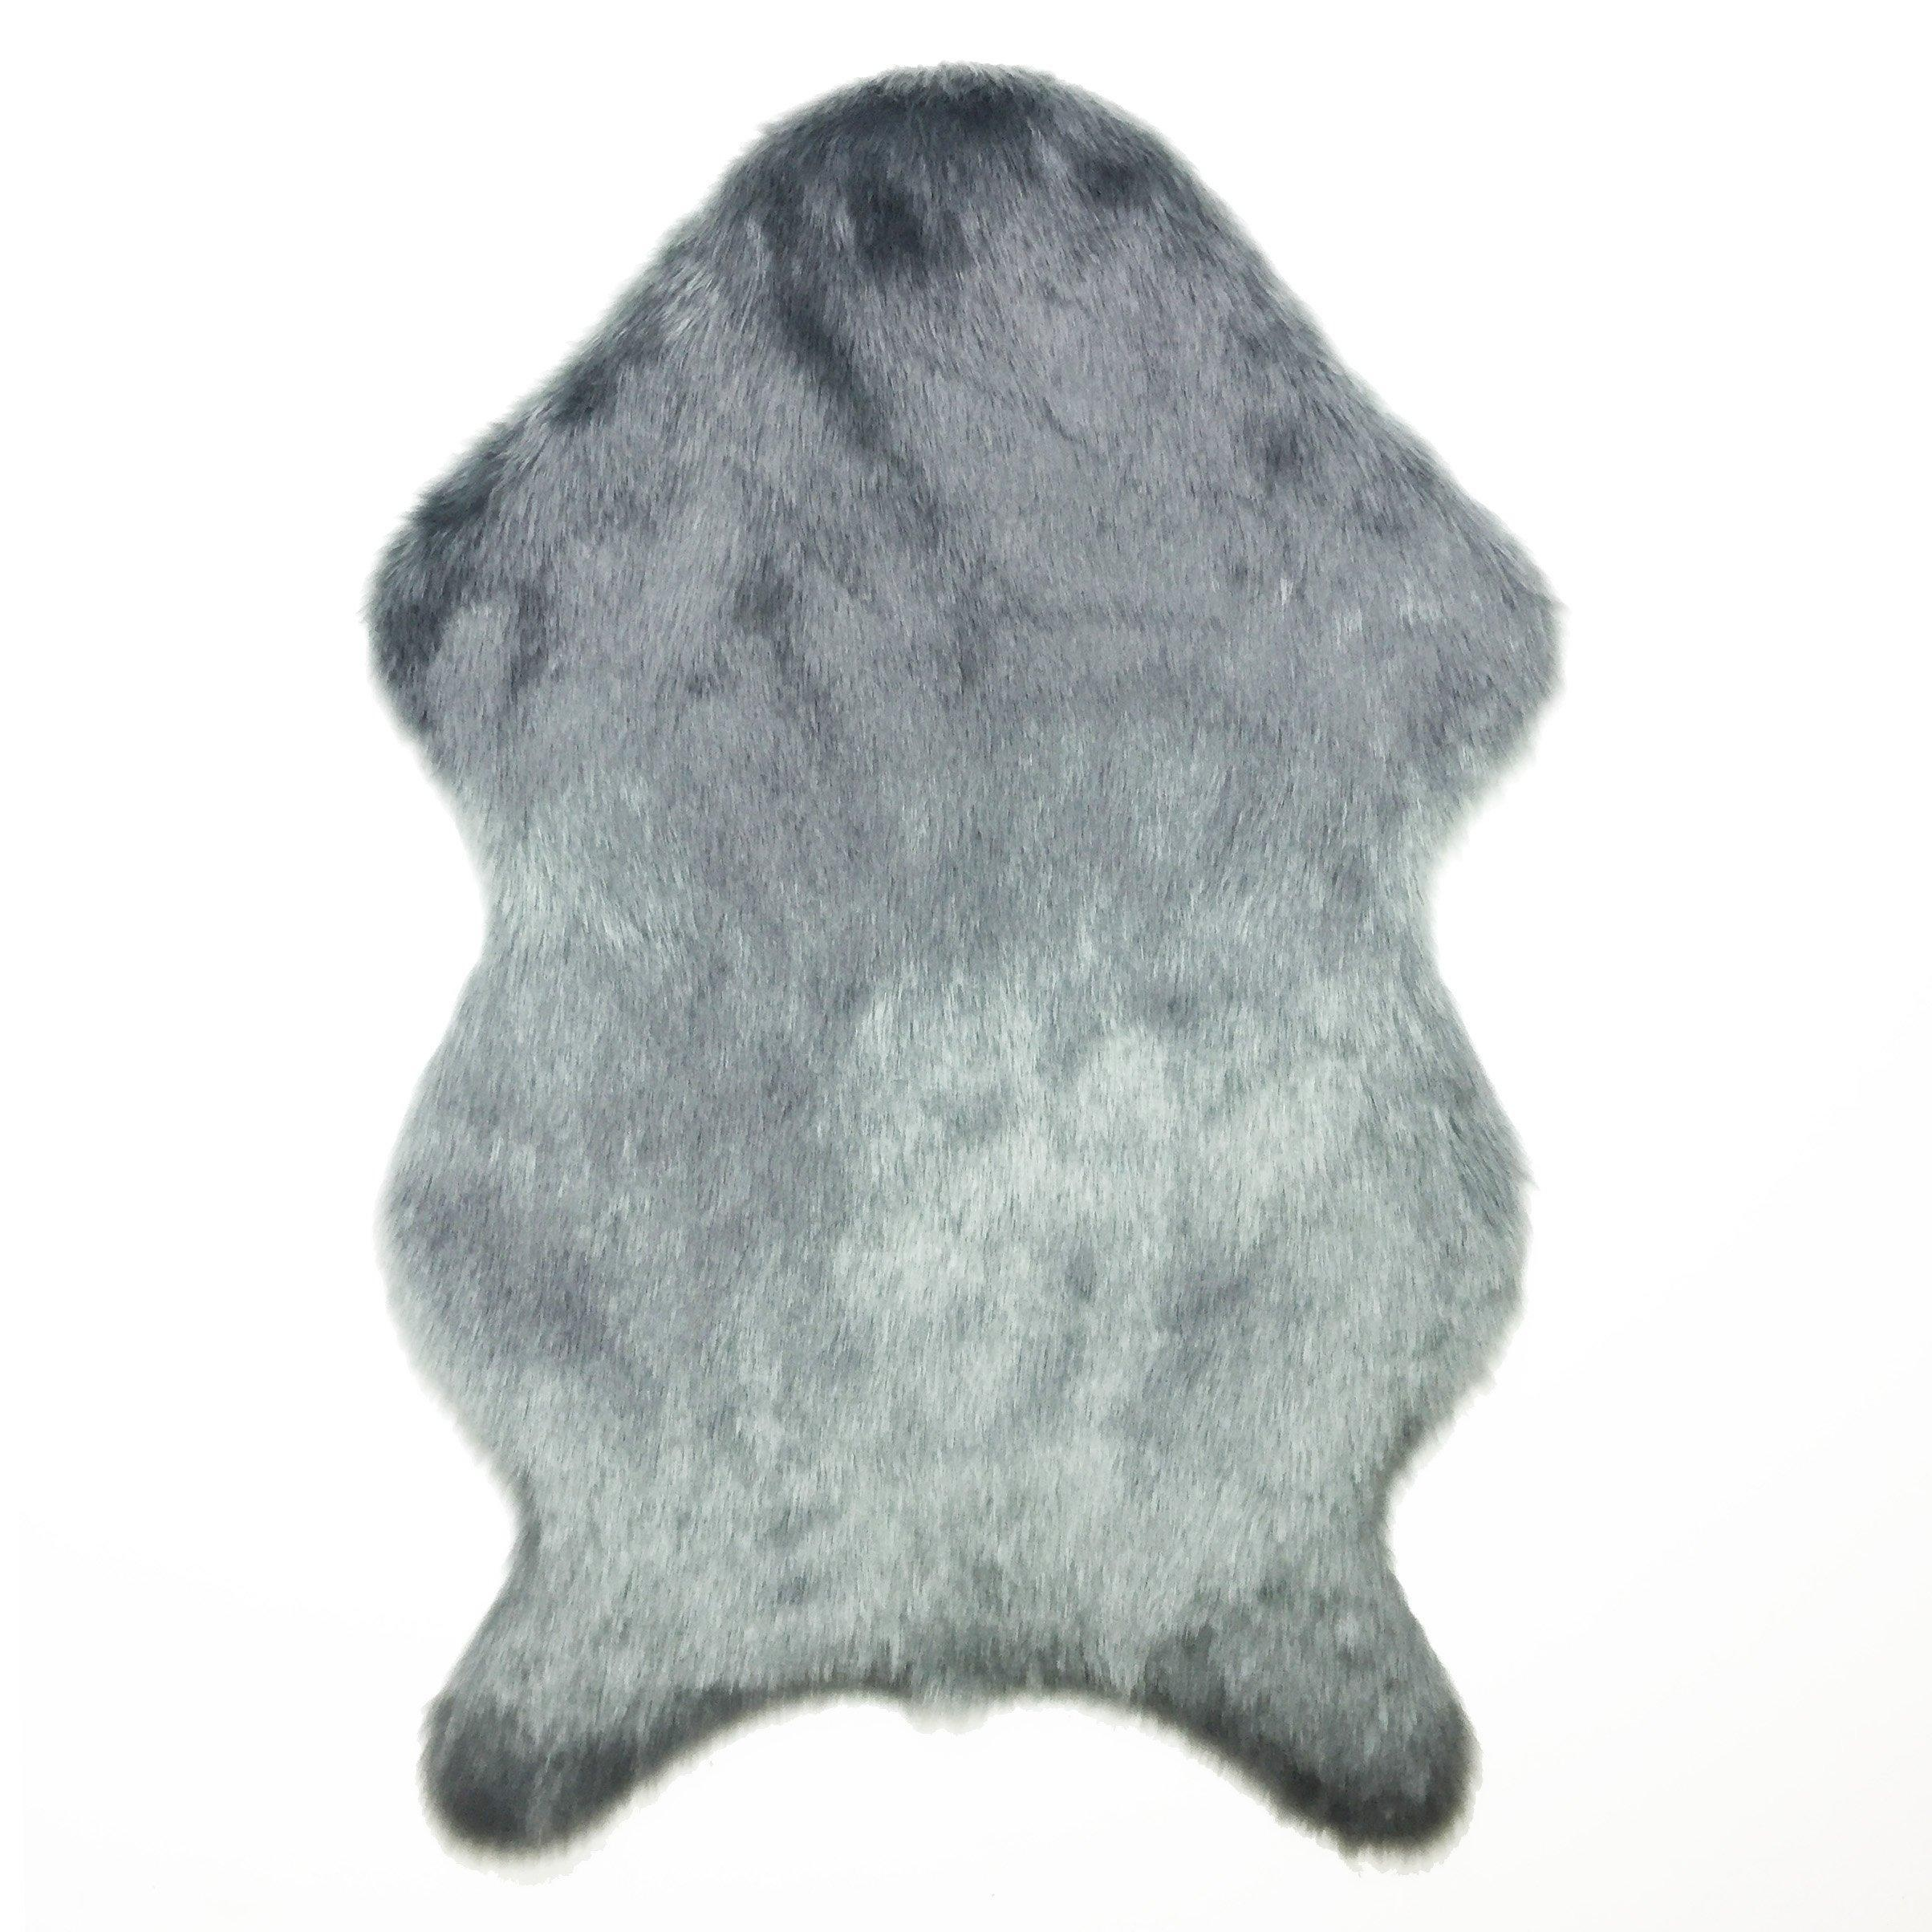 Faux Fur Area Rugs | Fur Rug | Tiger Fur Rug